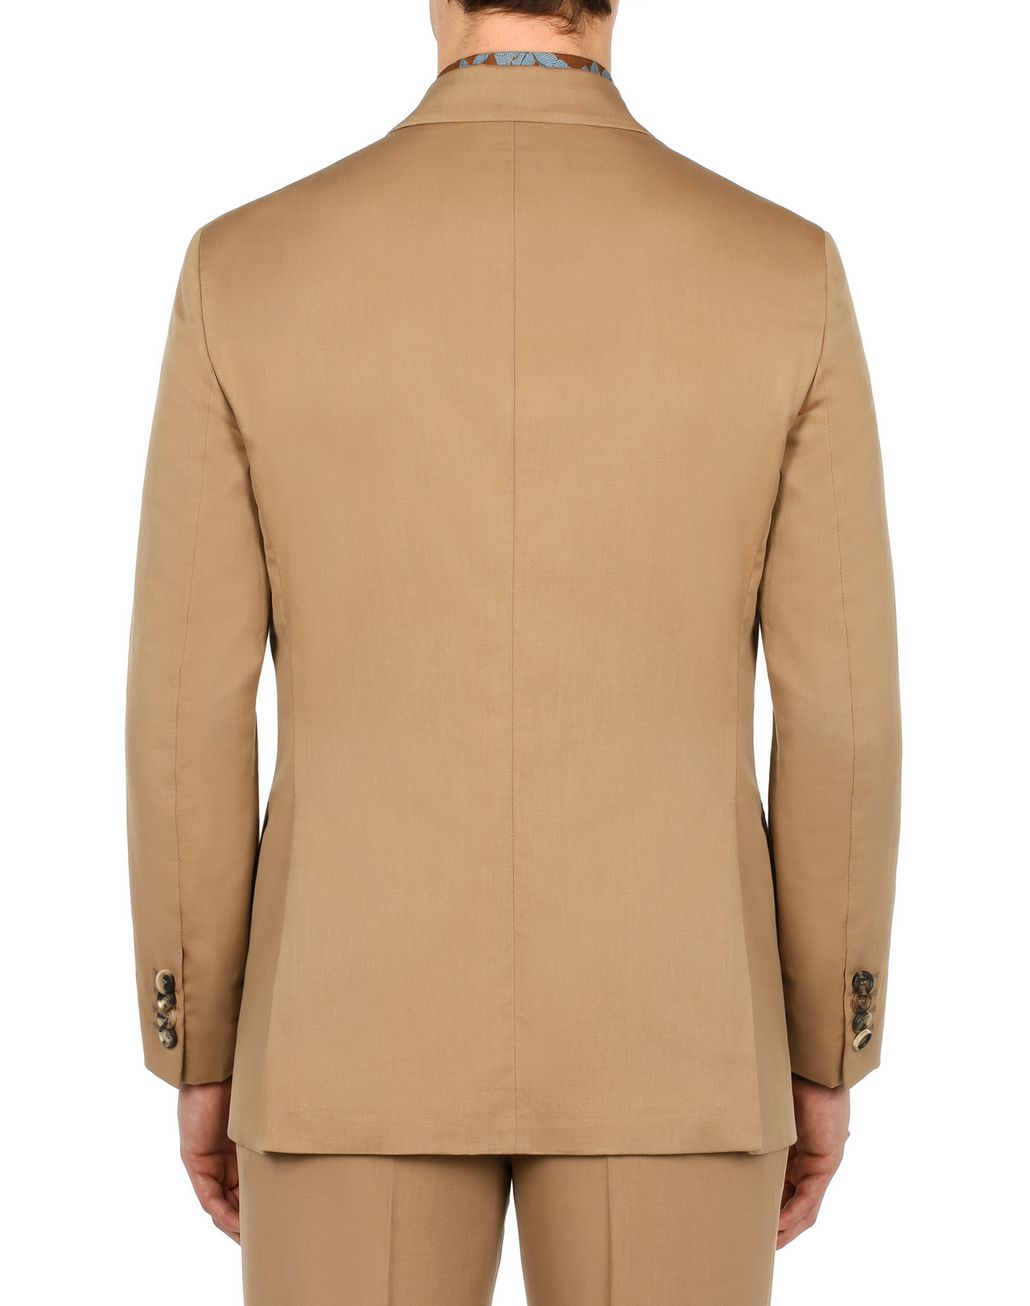 BRIONI Beige Decostructed Jacket Jackets Man d